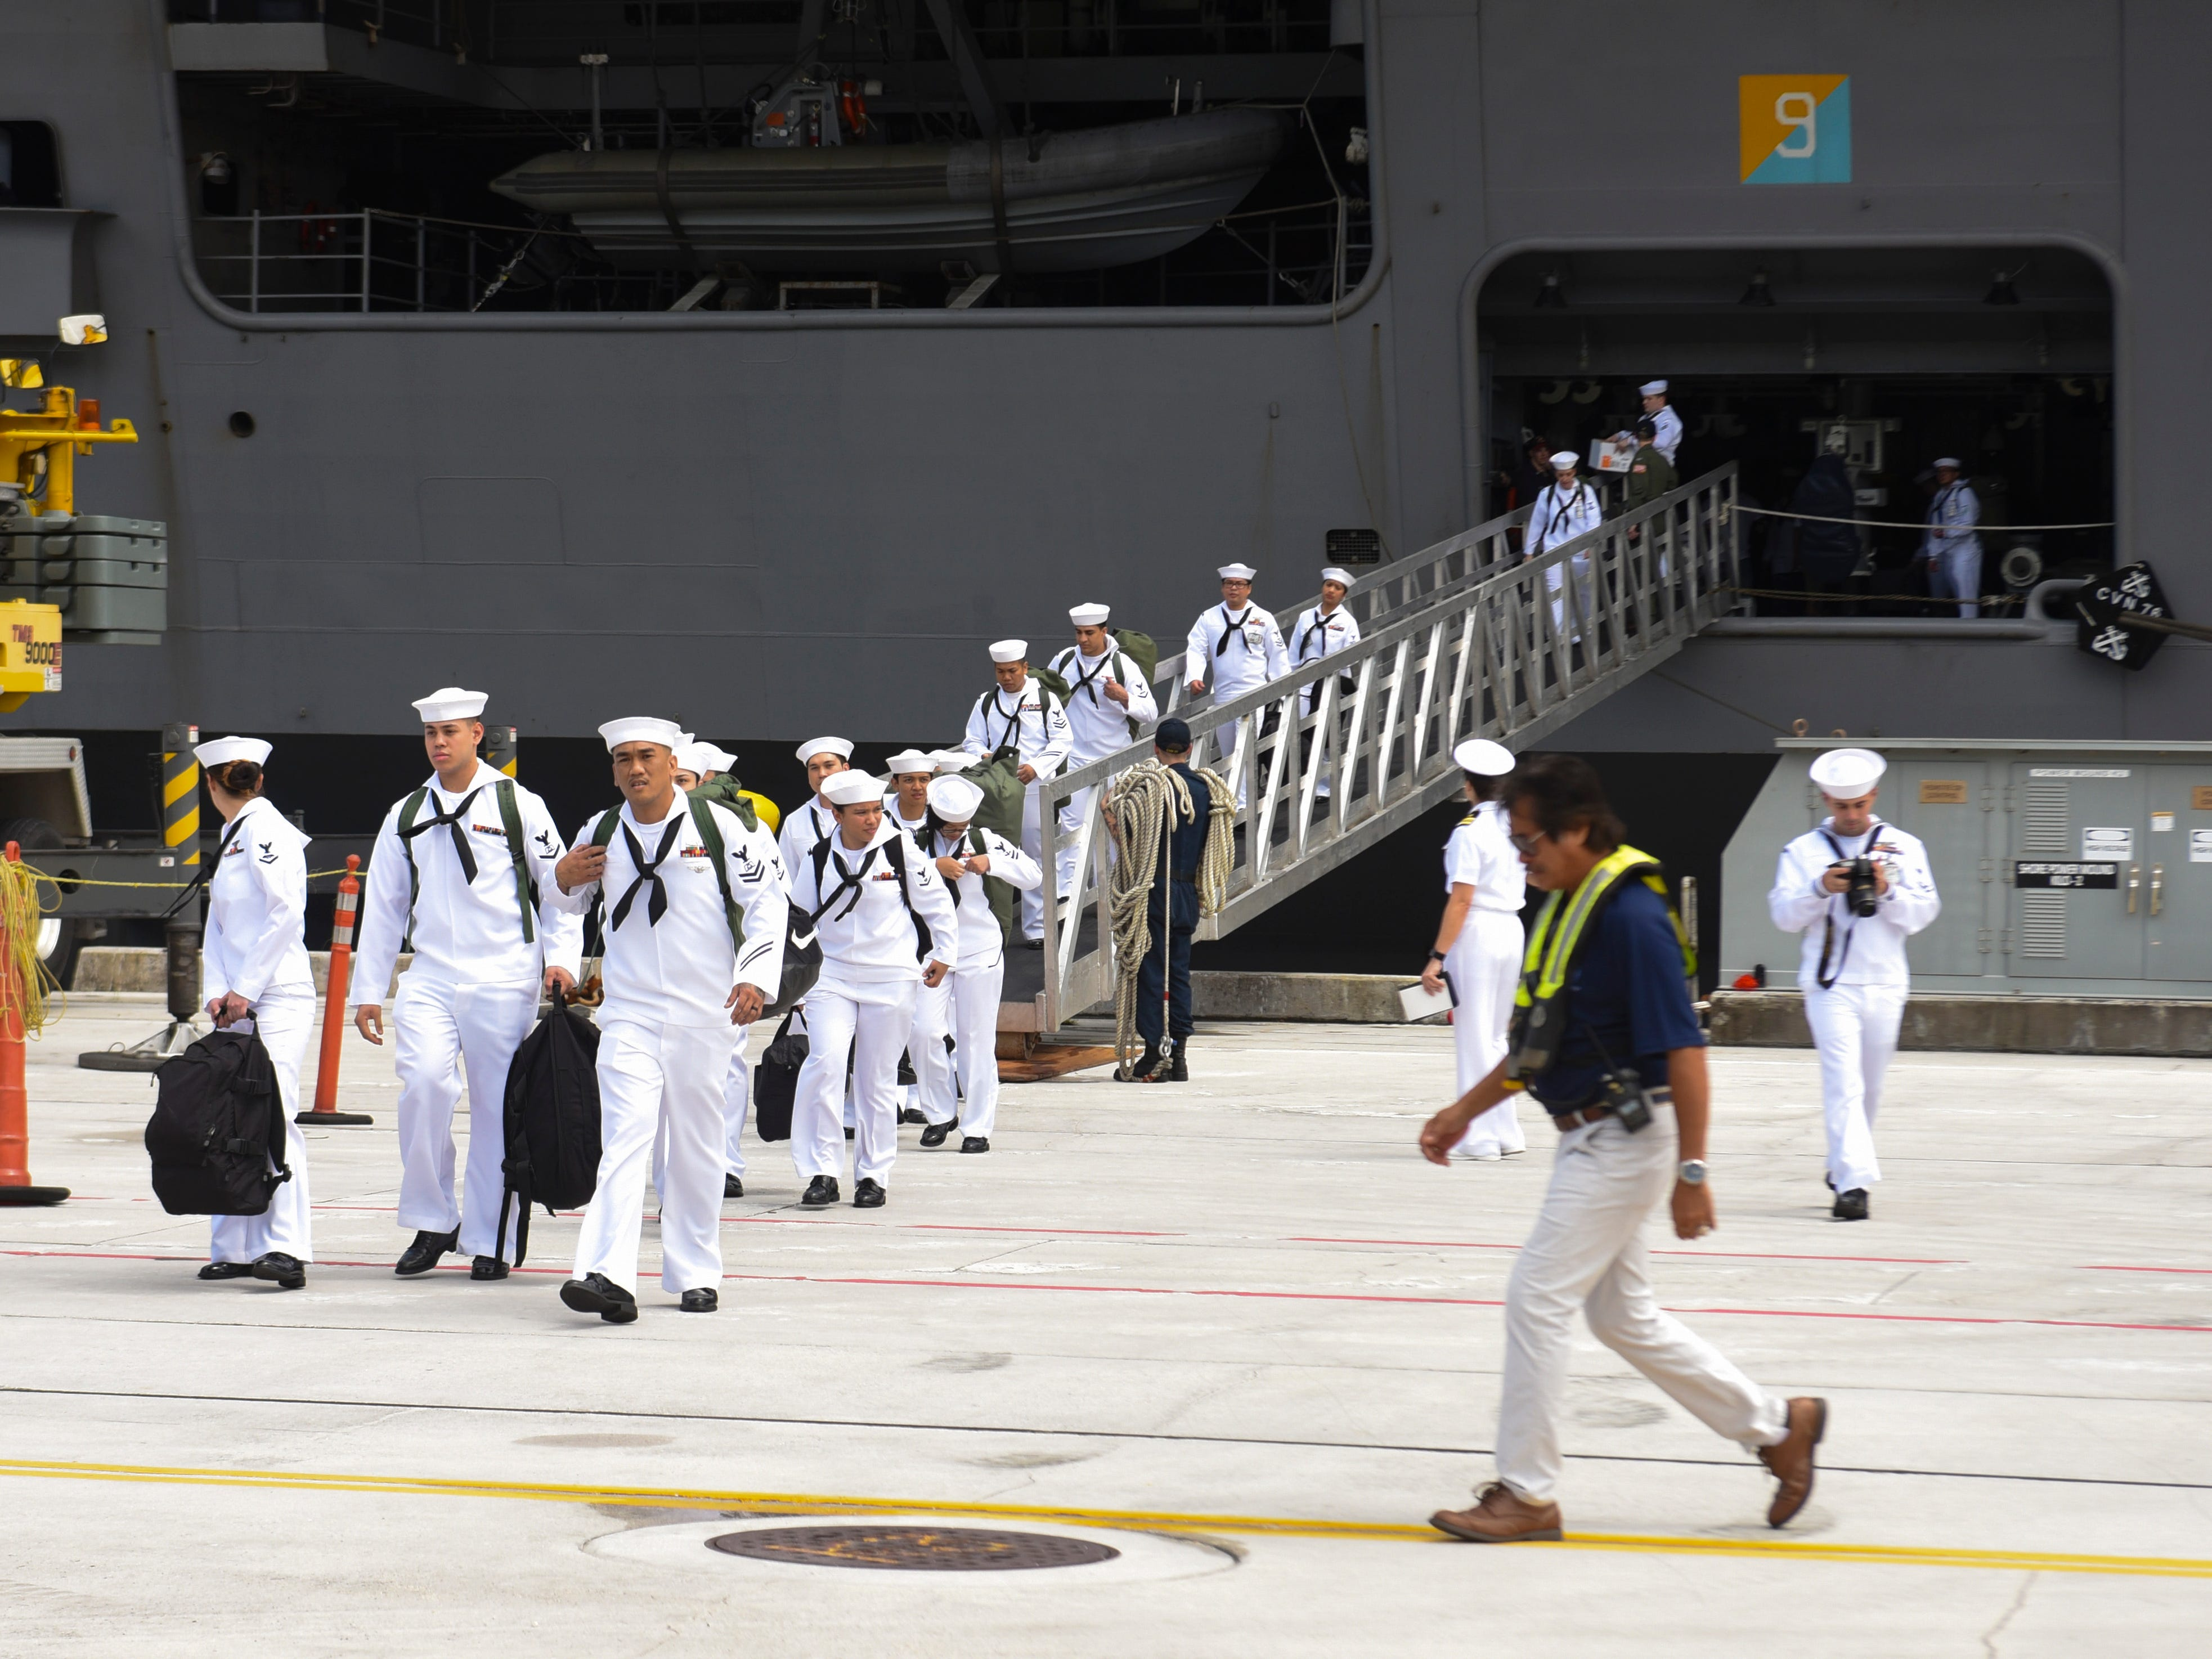 Sailors with Guam ties disembark from the Nimitz-class nuclear-powered aircraft carrier, USS Ronald Reagan, after the ship docked at the Kilo Wharf on Naval Base Guam in Sumay on Monday, Sept. 24, 2018. The vessel and its crew of nearly 5,000 sailors, normally forward-deployed at Yokosuka, Japan, is paying a port visit to the island.